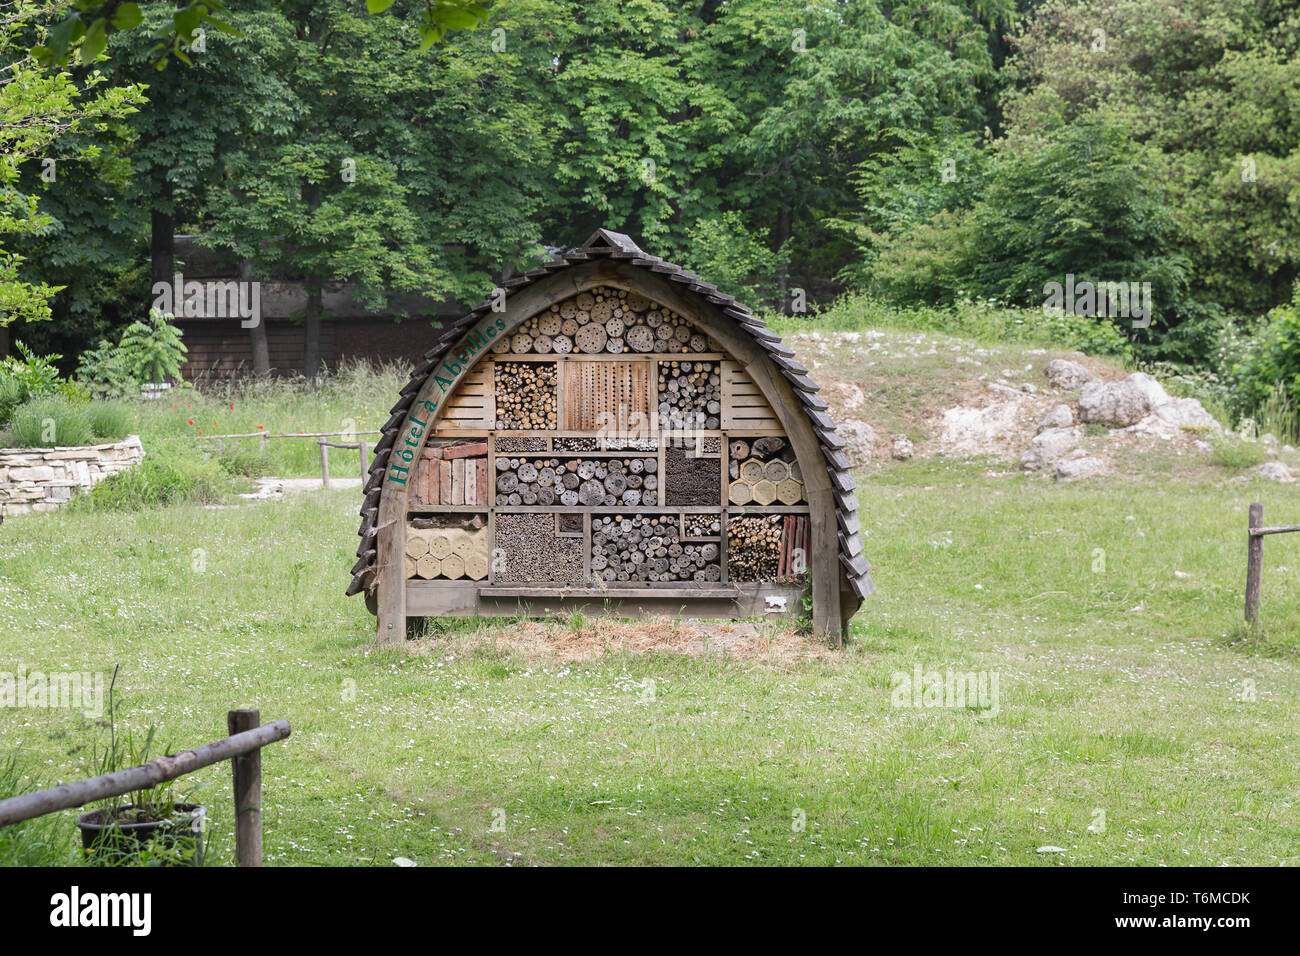 Insects hotel in city park Paris - Stock Image